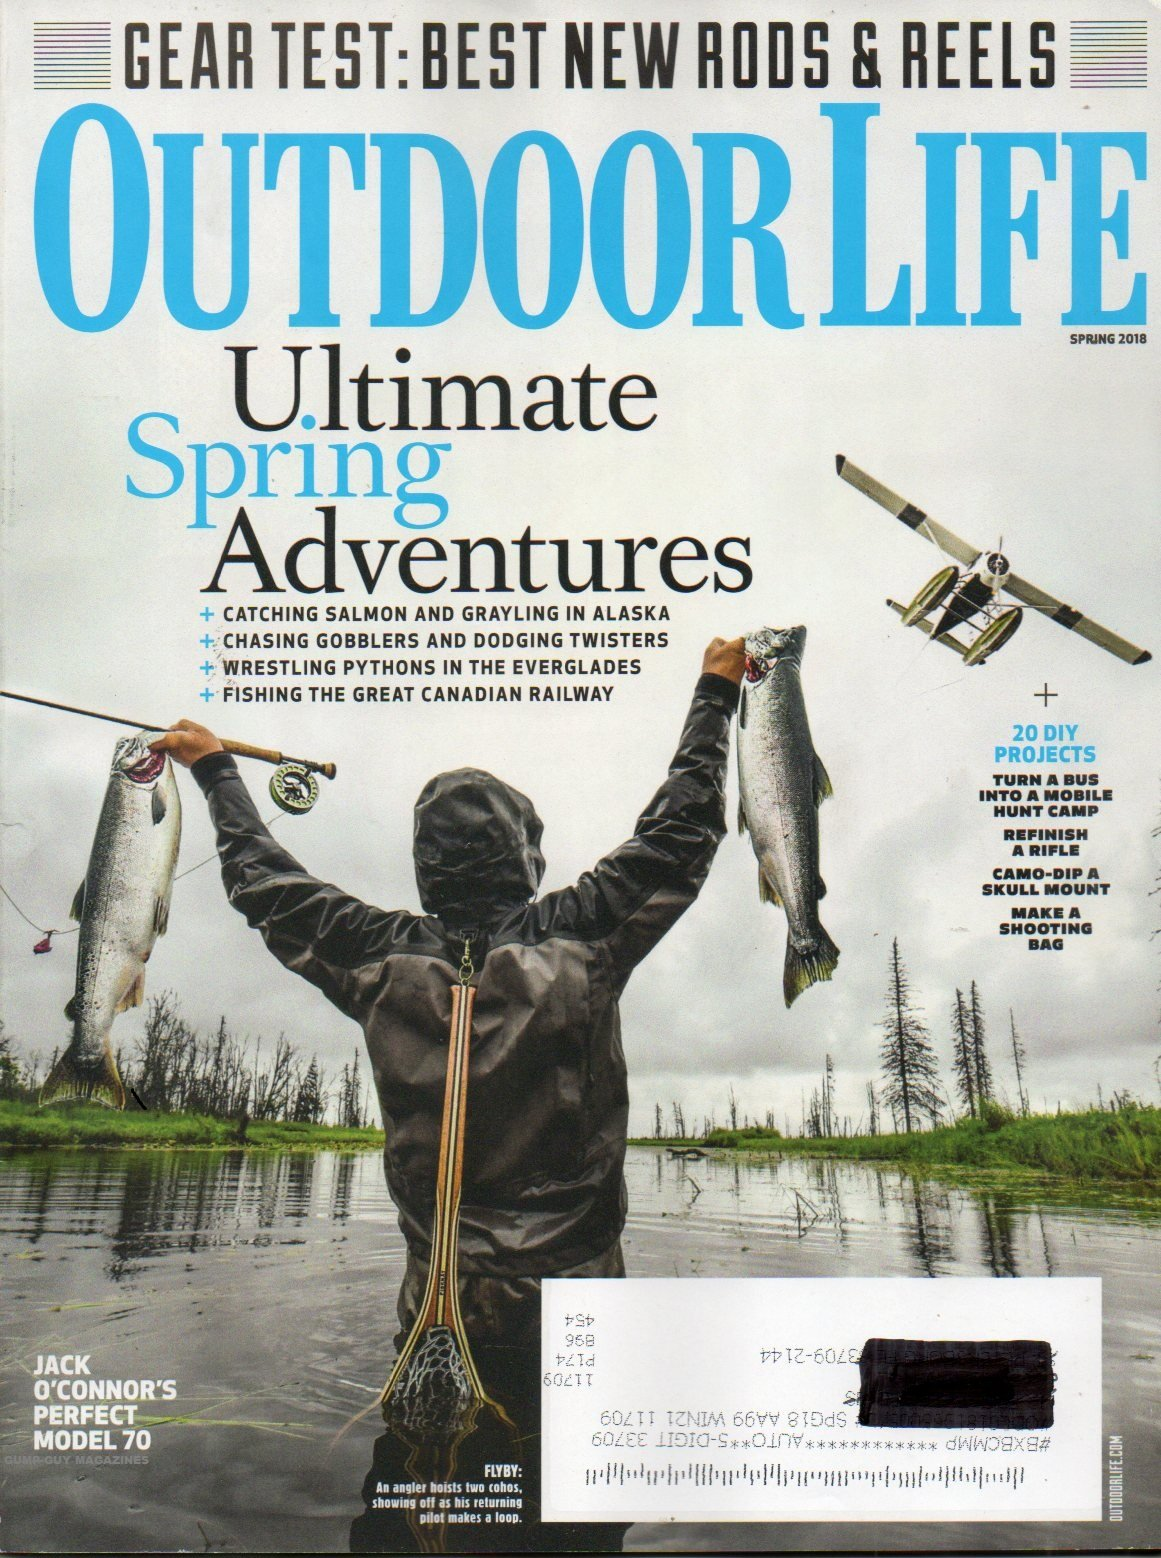 JACK O'CONNOR'S PERFECT MODEL 70 Outdoor Life Magazine GEAR TEST: BEST NEW RODS & REELS IN 2018 Make A Shooting Bag CAMO-DIP A SKULL MOUNT Refinish A Rifle PDF